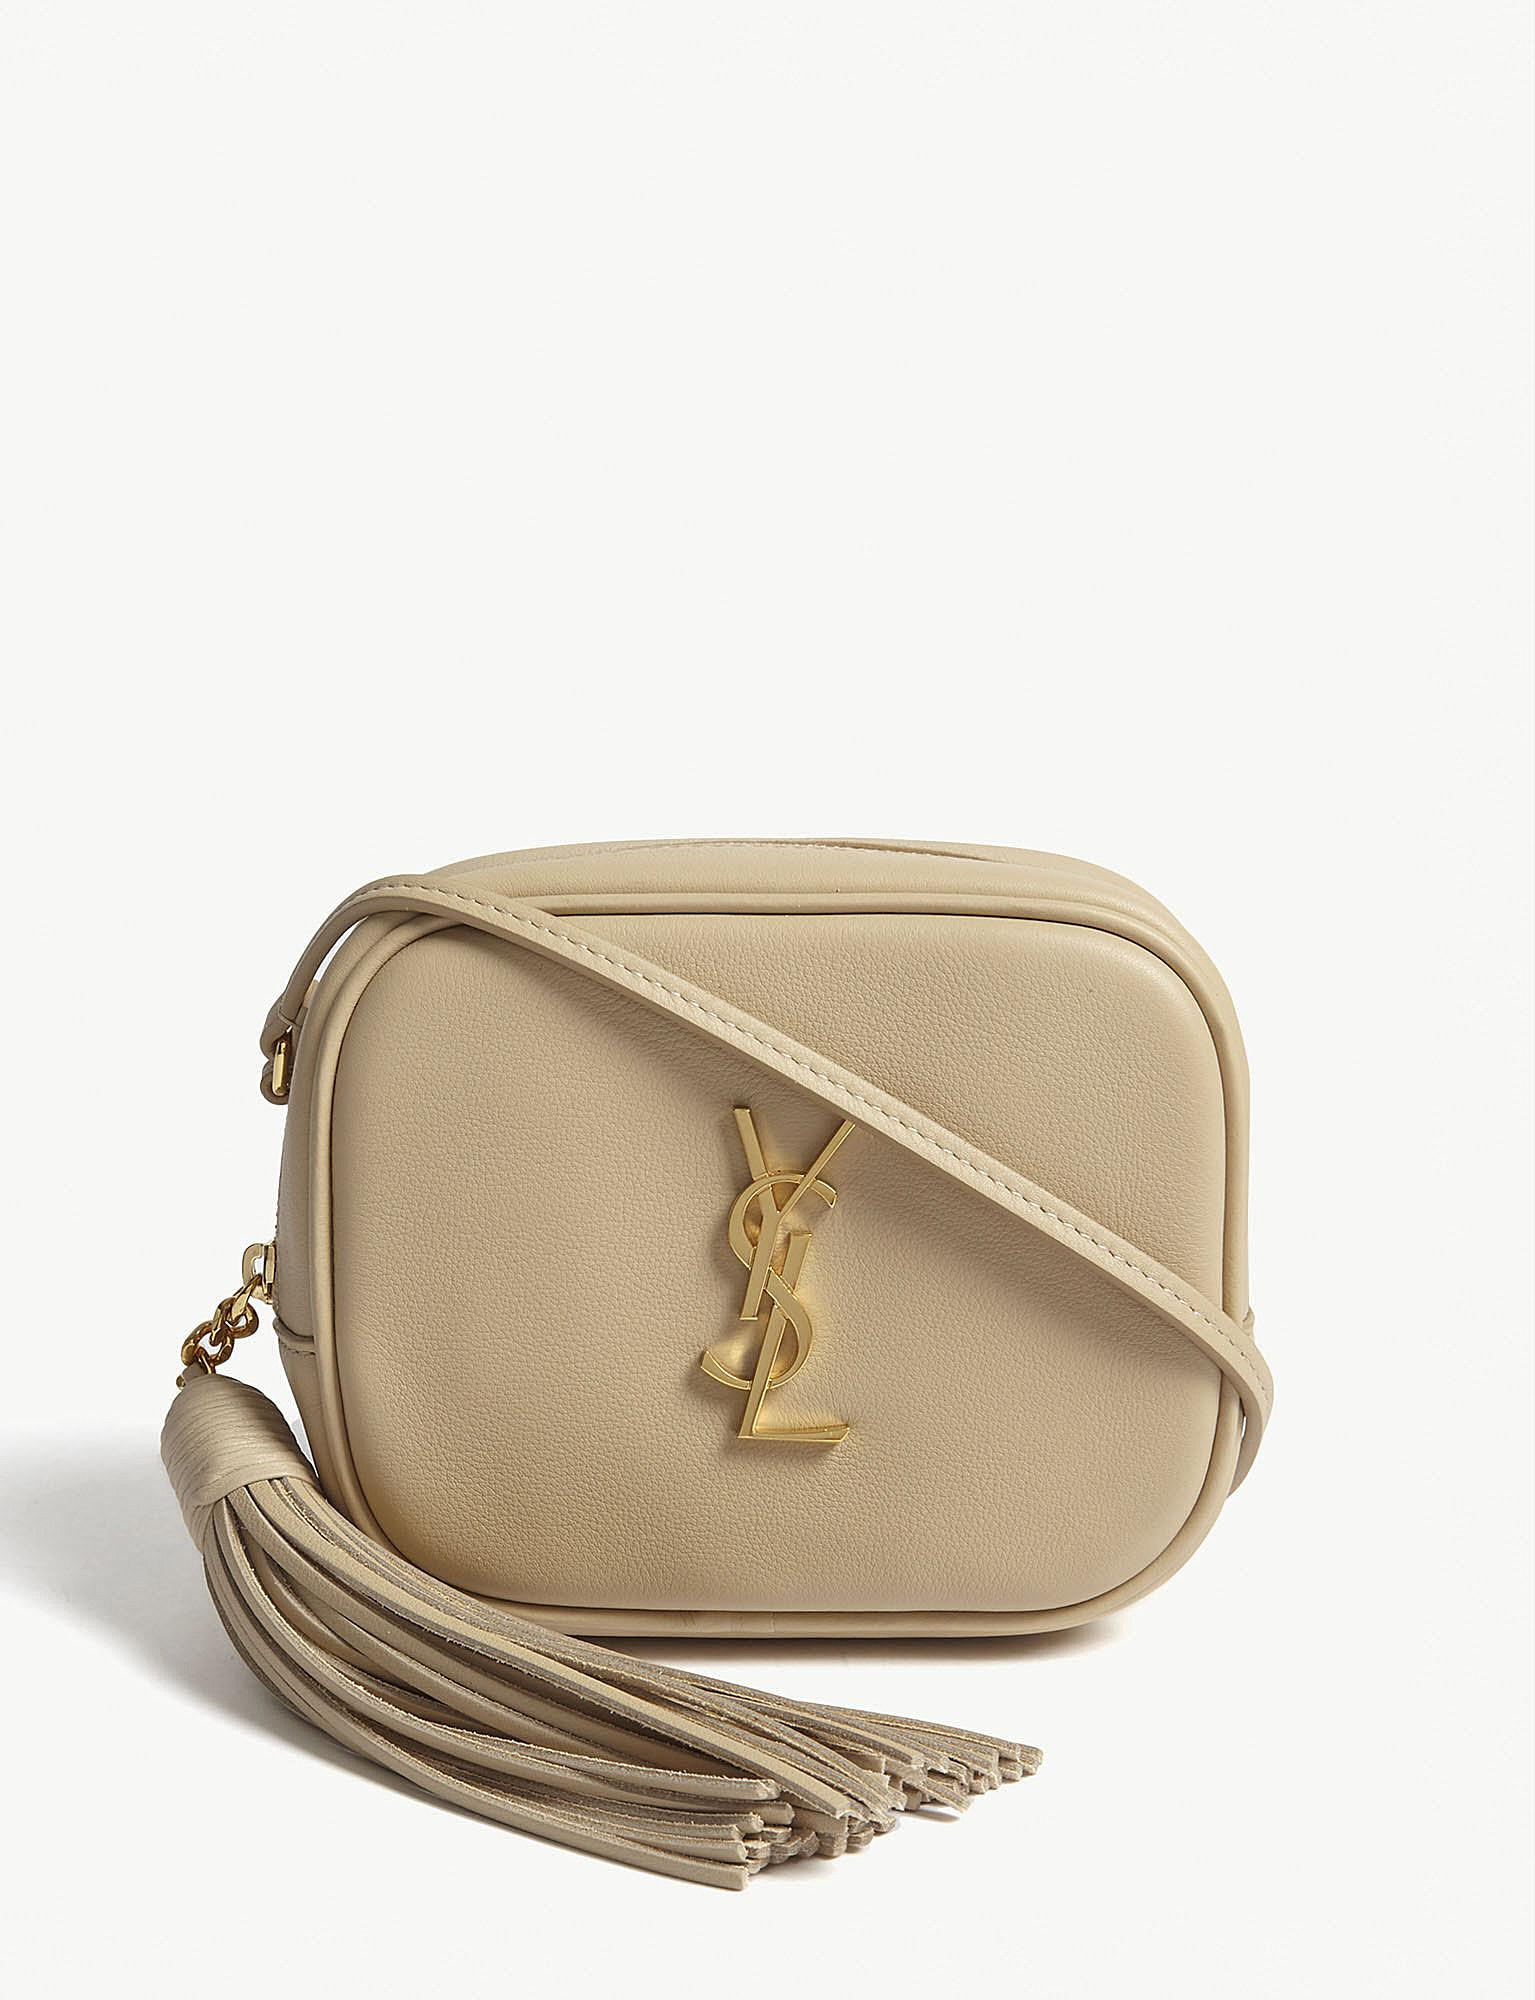 c7f1c63d84db Lyst - Saint Laurent Toy Blogger Leather Cross-body Bag in Natural